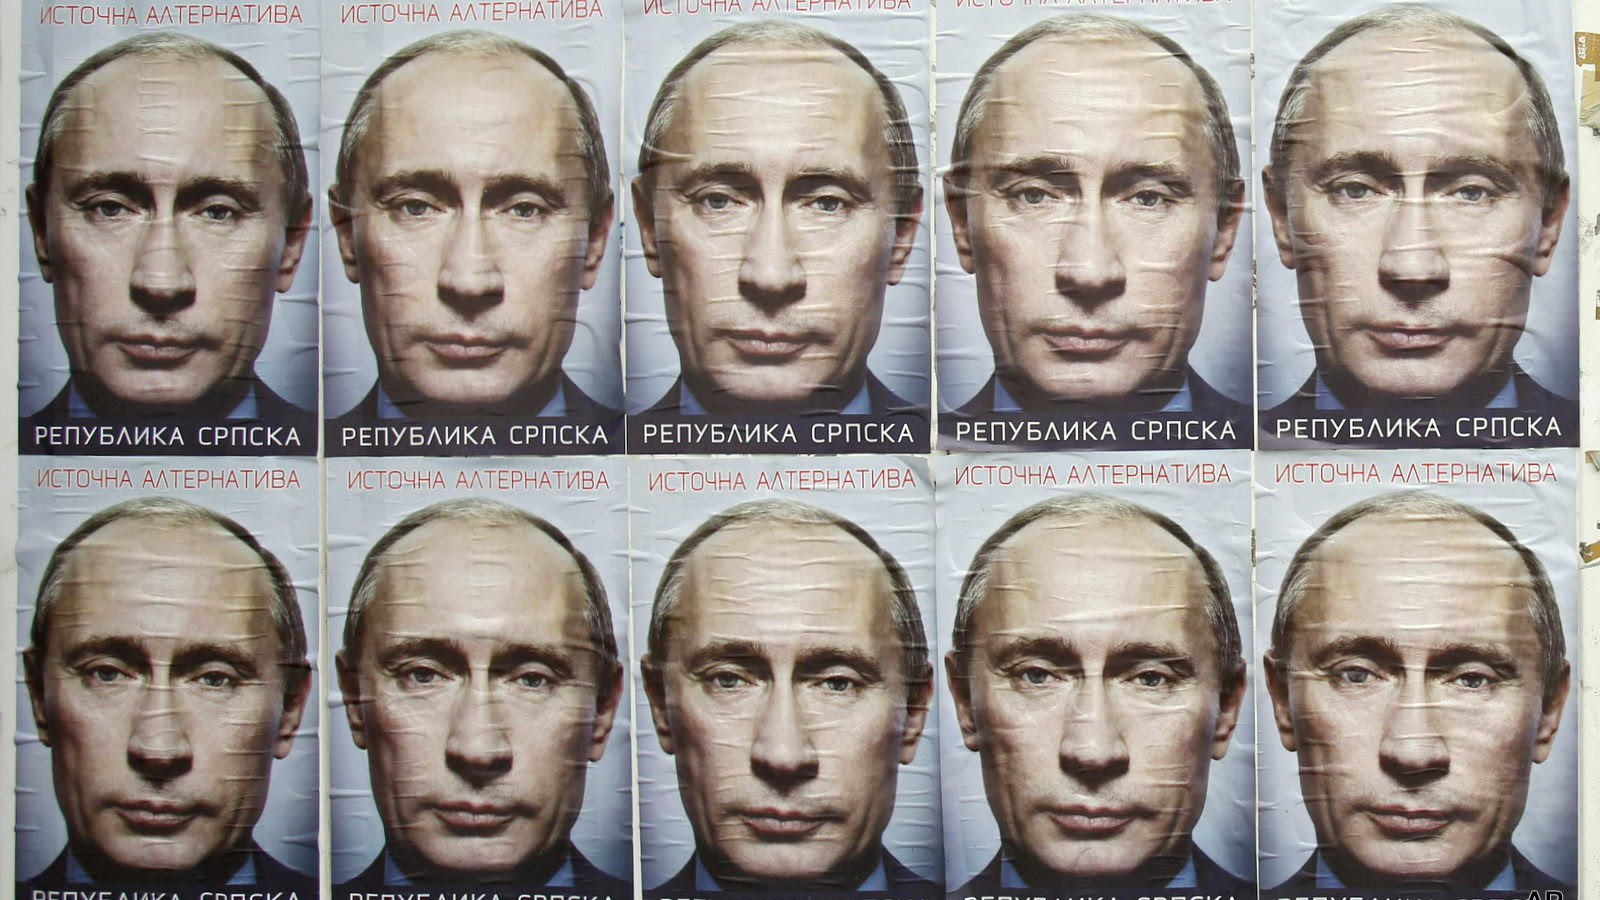 Russians are called out for activities far less egregious than what the U.S. government – aided and abetted by the Times – has done.